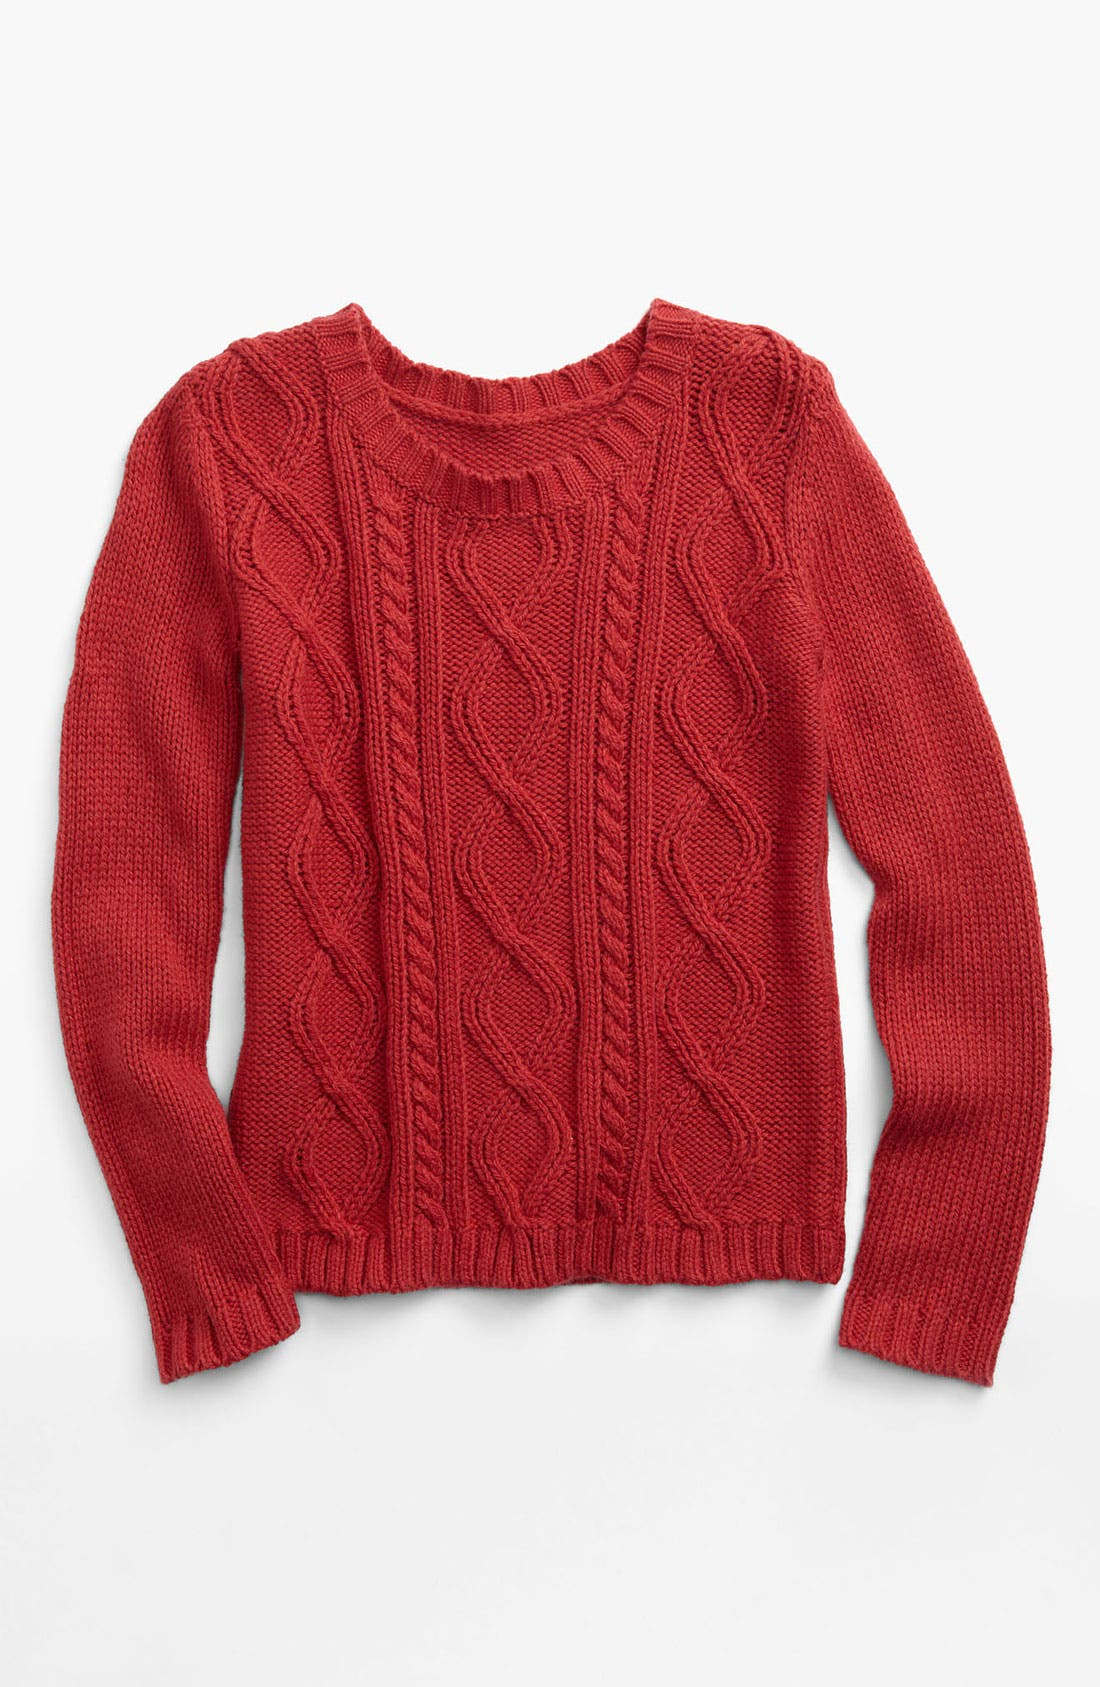 Main Image - Tucker + Tate 'Melody' Cable Knit Sweater (Big Girls)